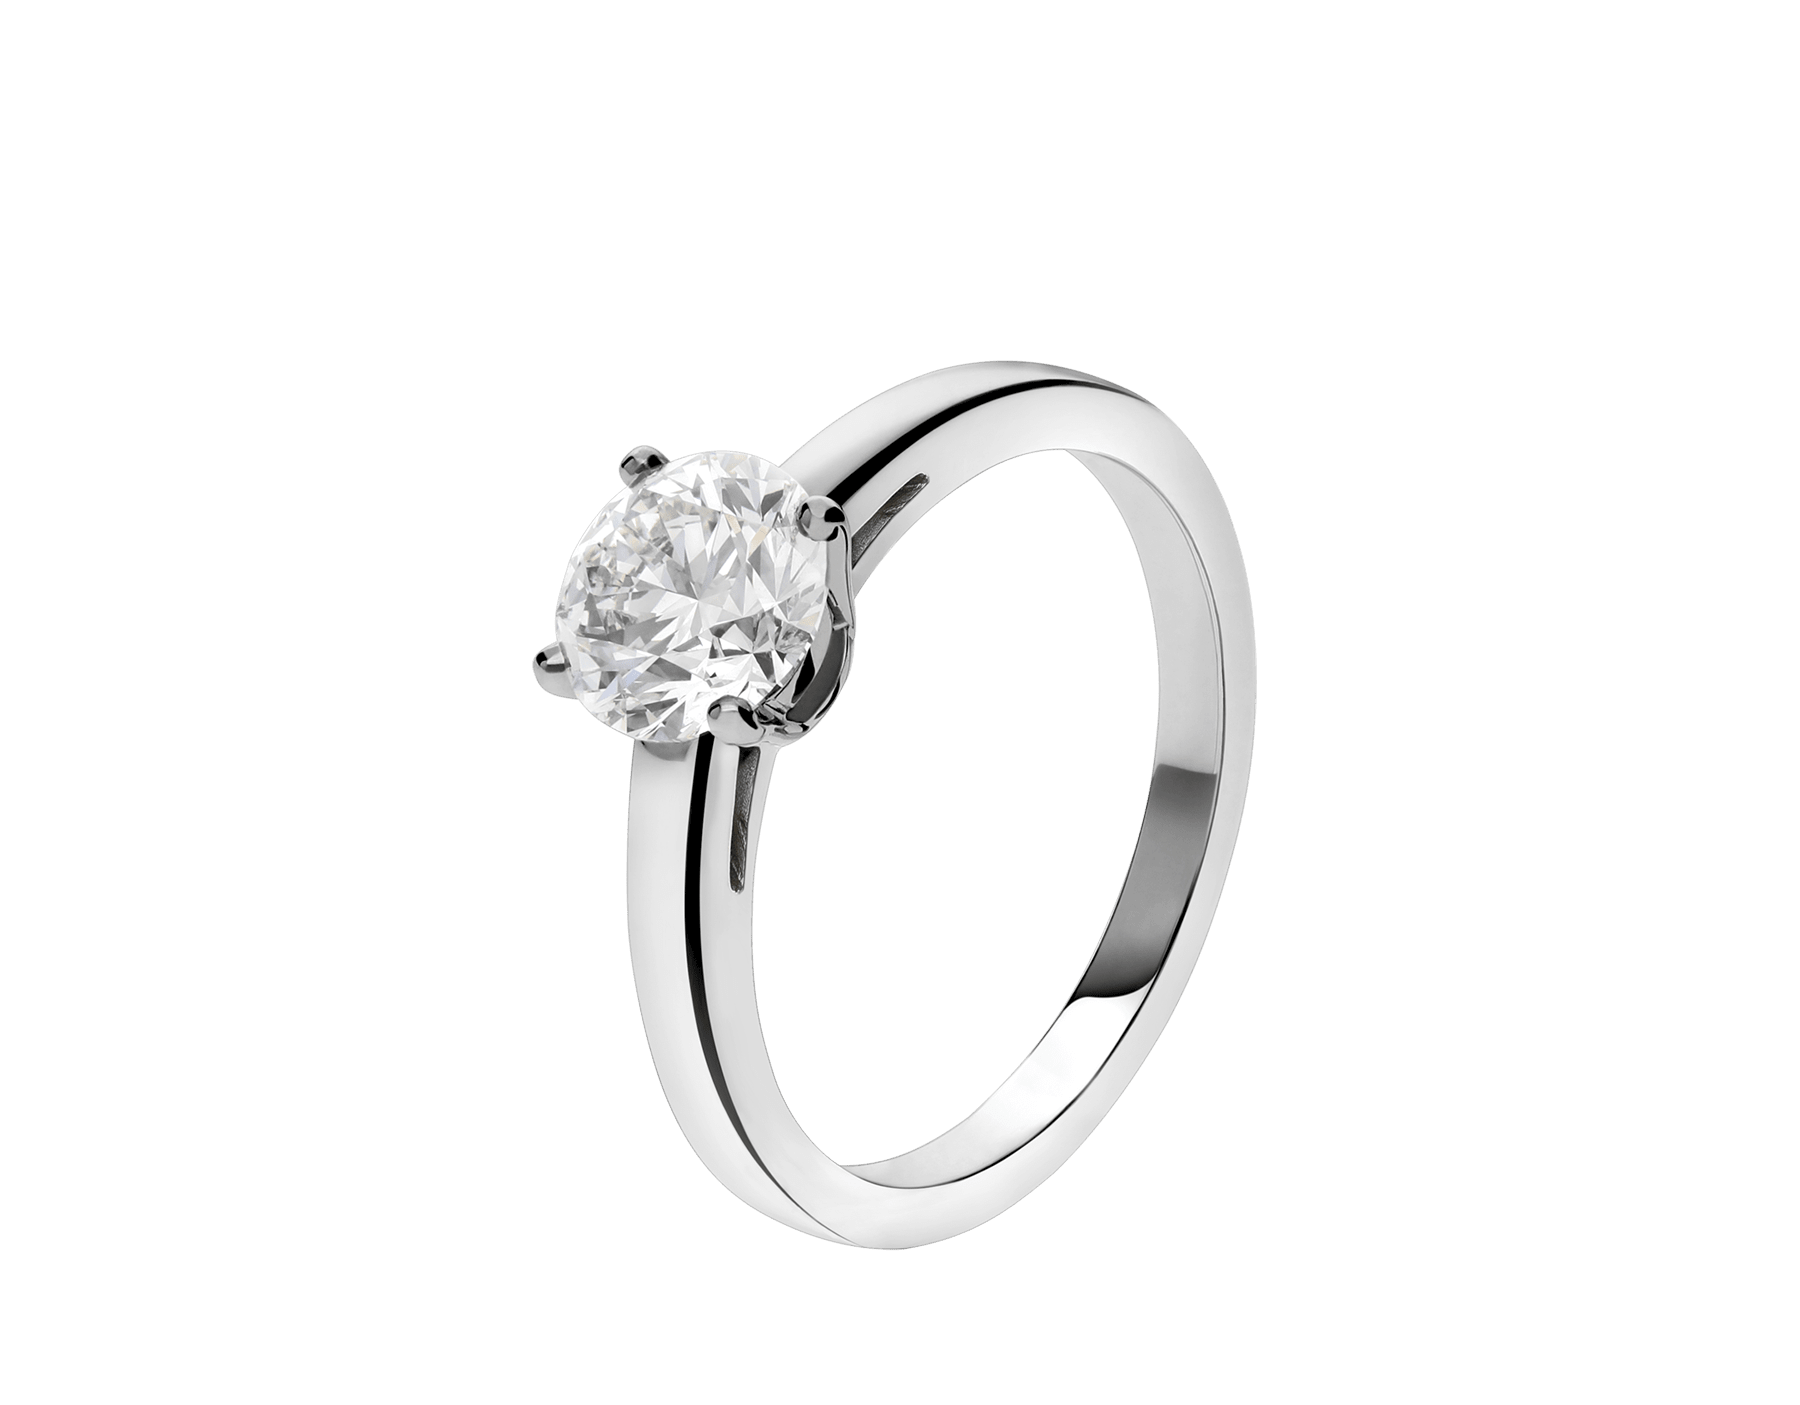 Griffe ring in platinum with round brilliant cut diamond. Available from 0.30 ct. 327827 image 1